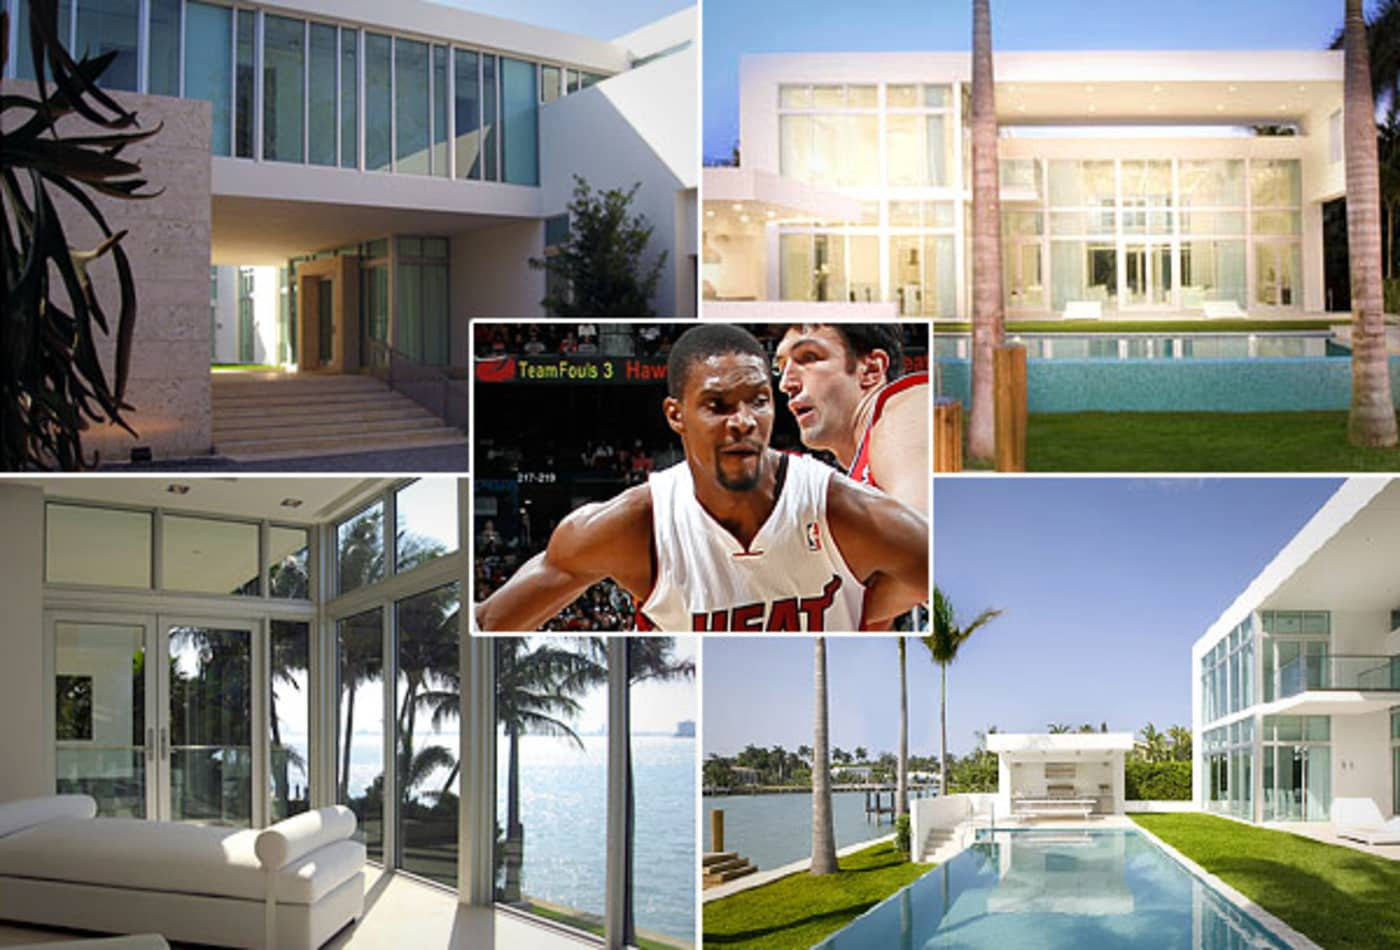 Chris-Bosh-Homes-of-NBA-Stars-CNBC.jpg